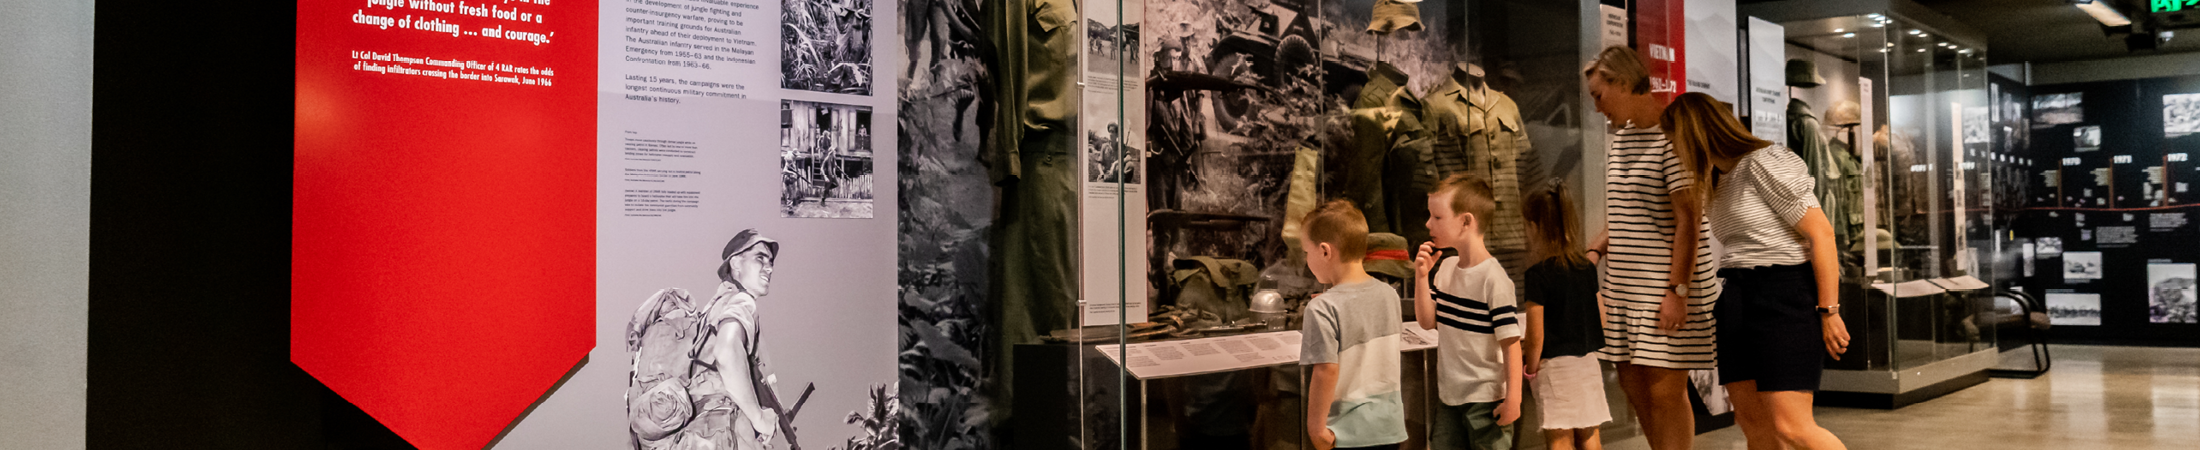 family browse australian infrantry museum